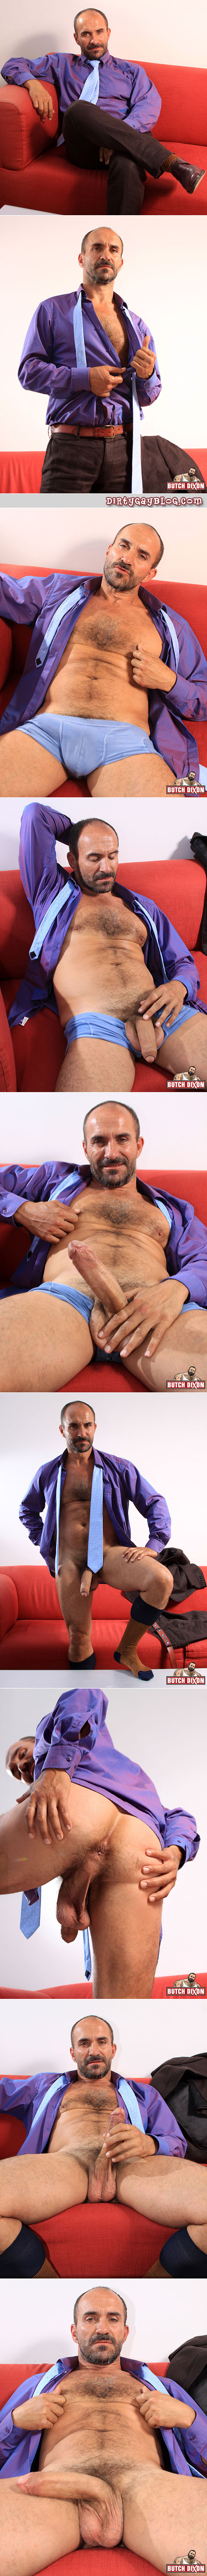 Hairy Frenchman in a suit jack off with his beard and big uncut cock.